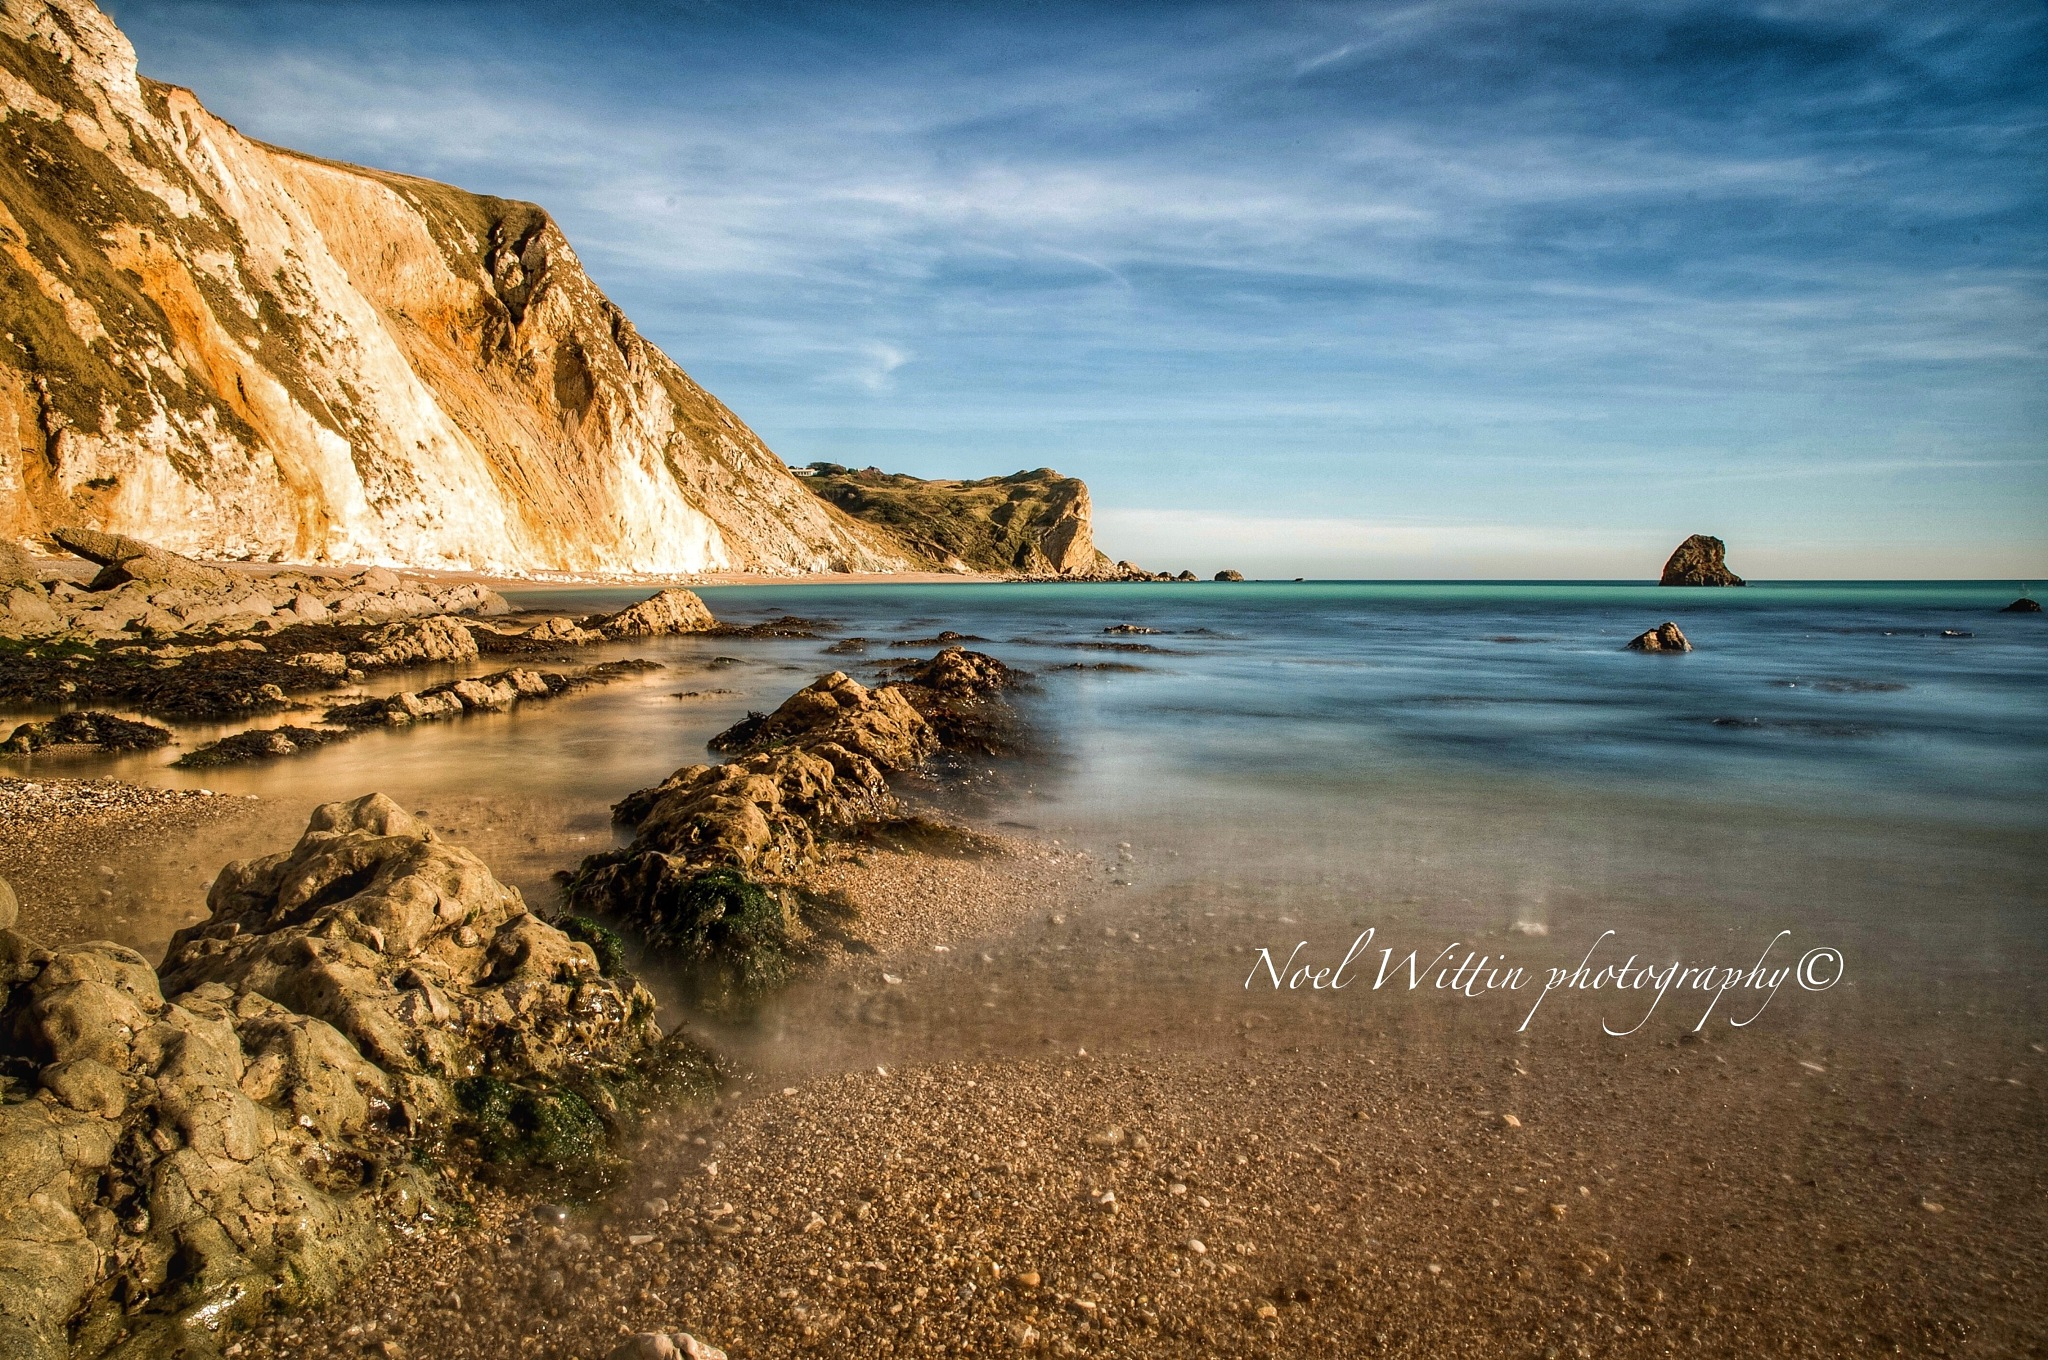 Man o war bay, Dorset uk. by noel.wittin